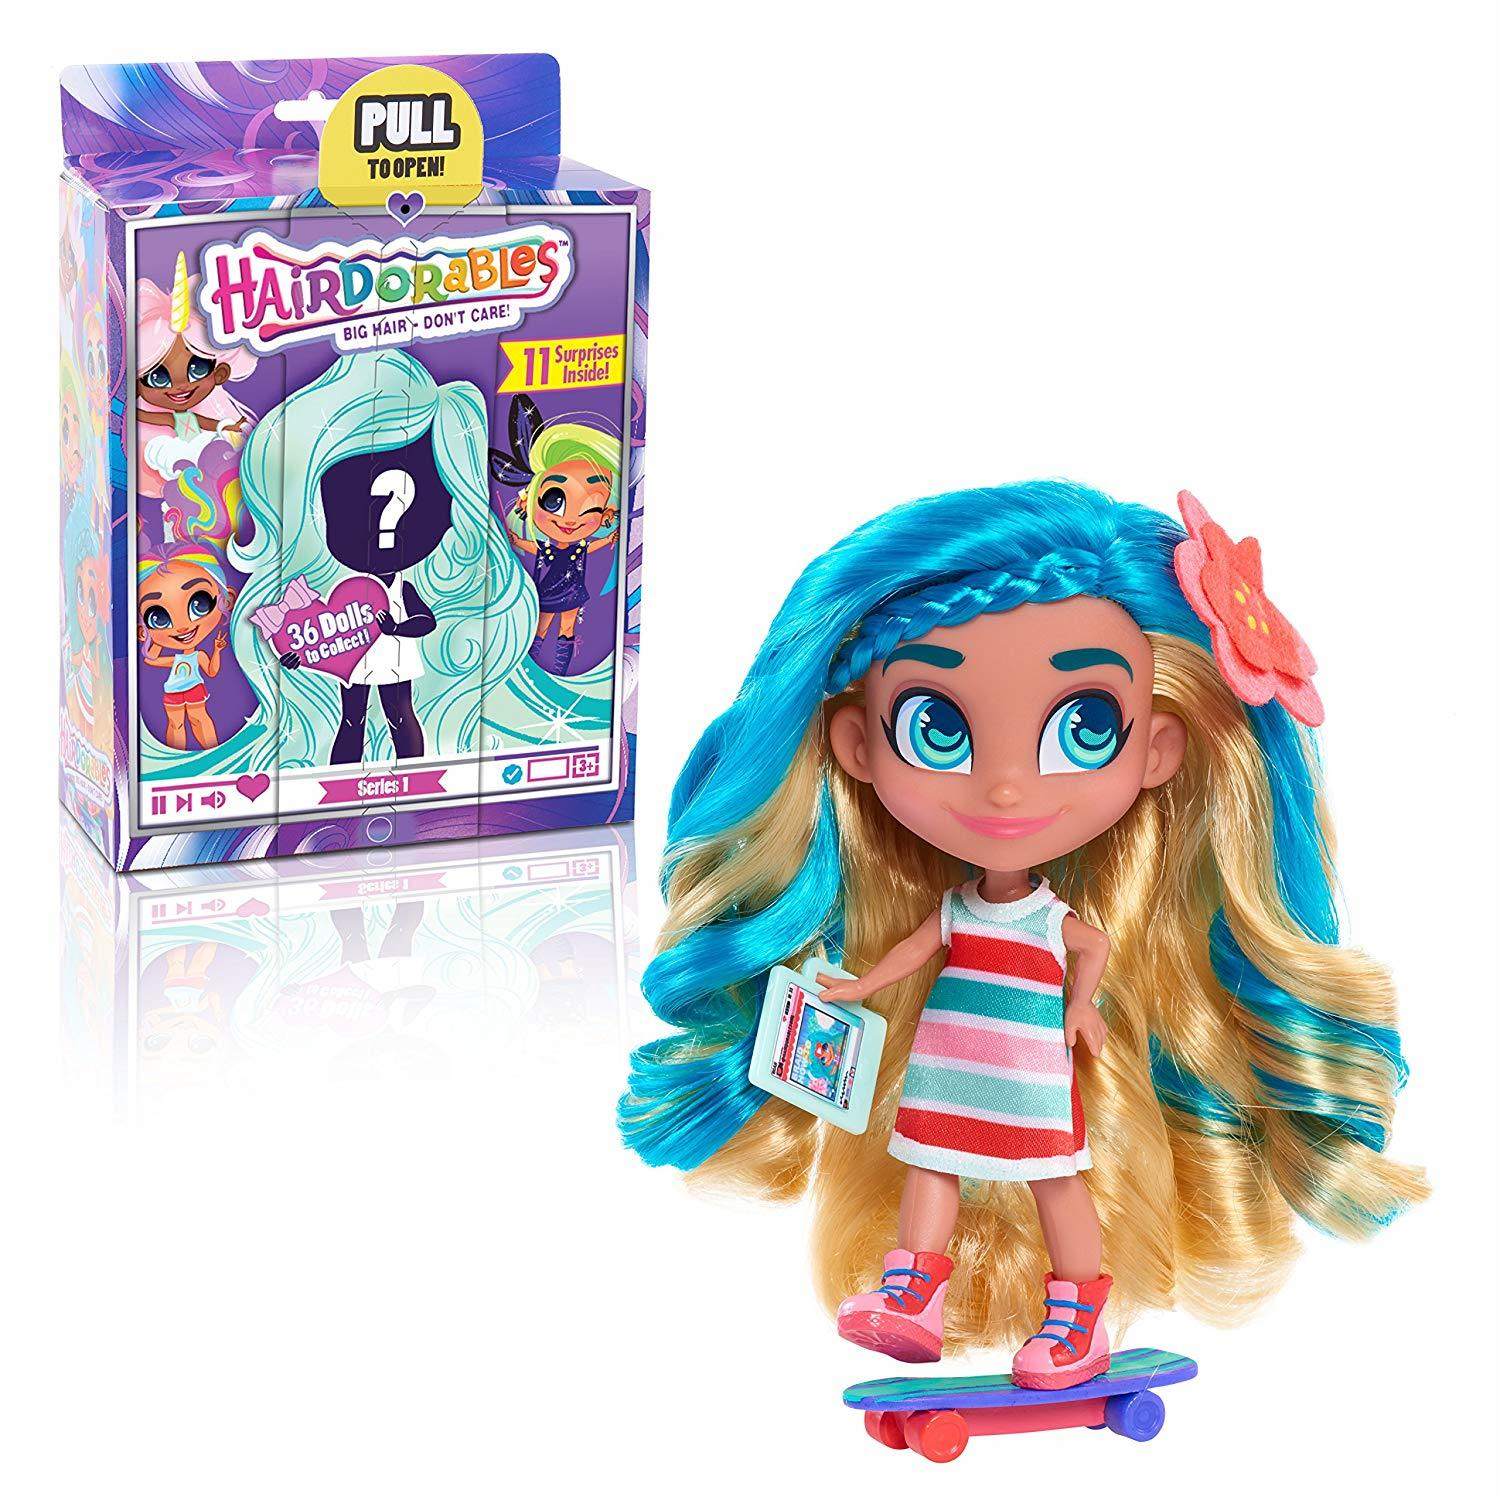 Hairdorables: Collectable Surprise Doll - Series 1 (Blind Box) image